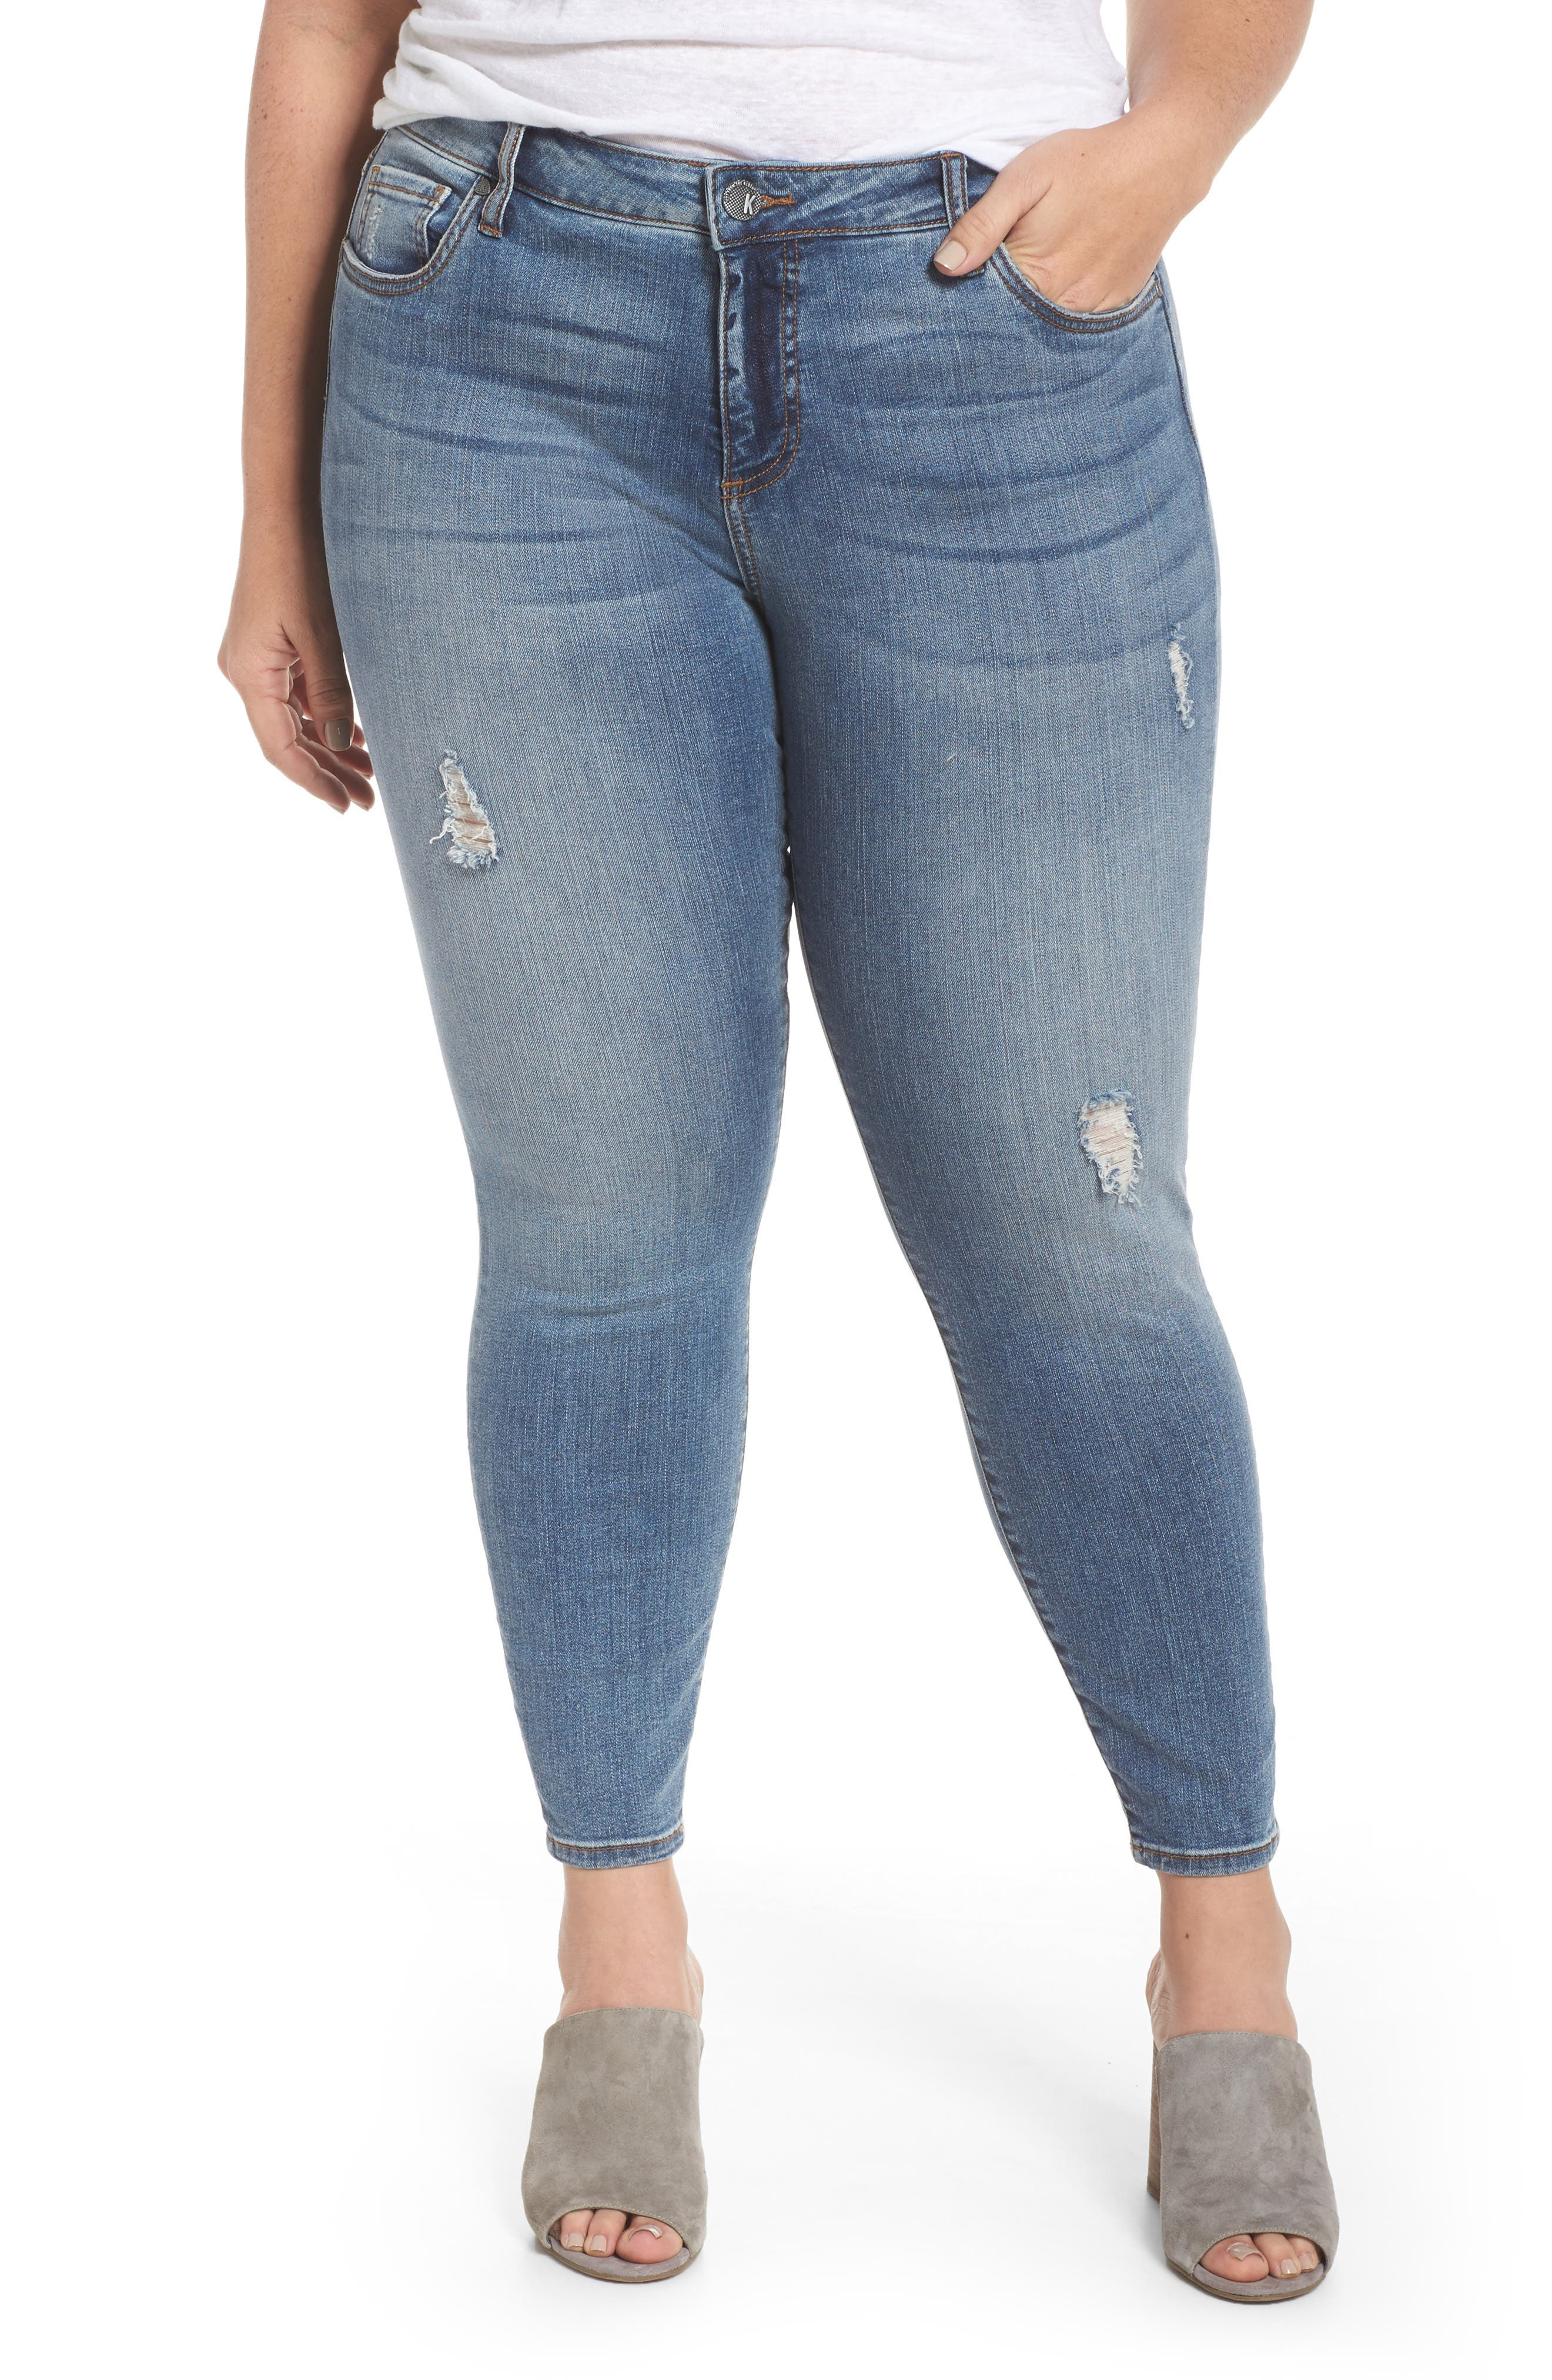 Main Image - KUT from the Kloth Donna High Waist Ankle Skinny Jeans (Galvanized with Me) (Plus Size)